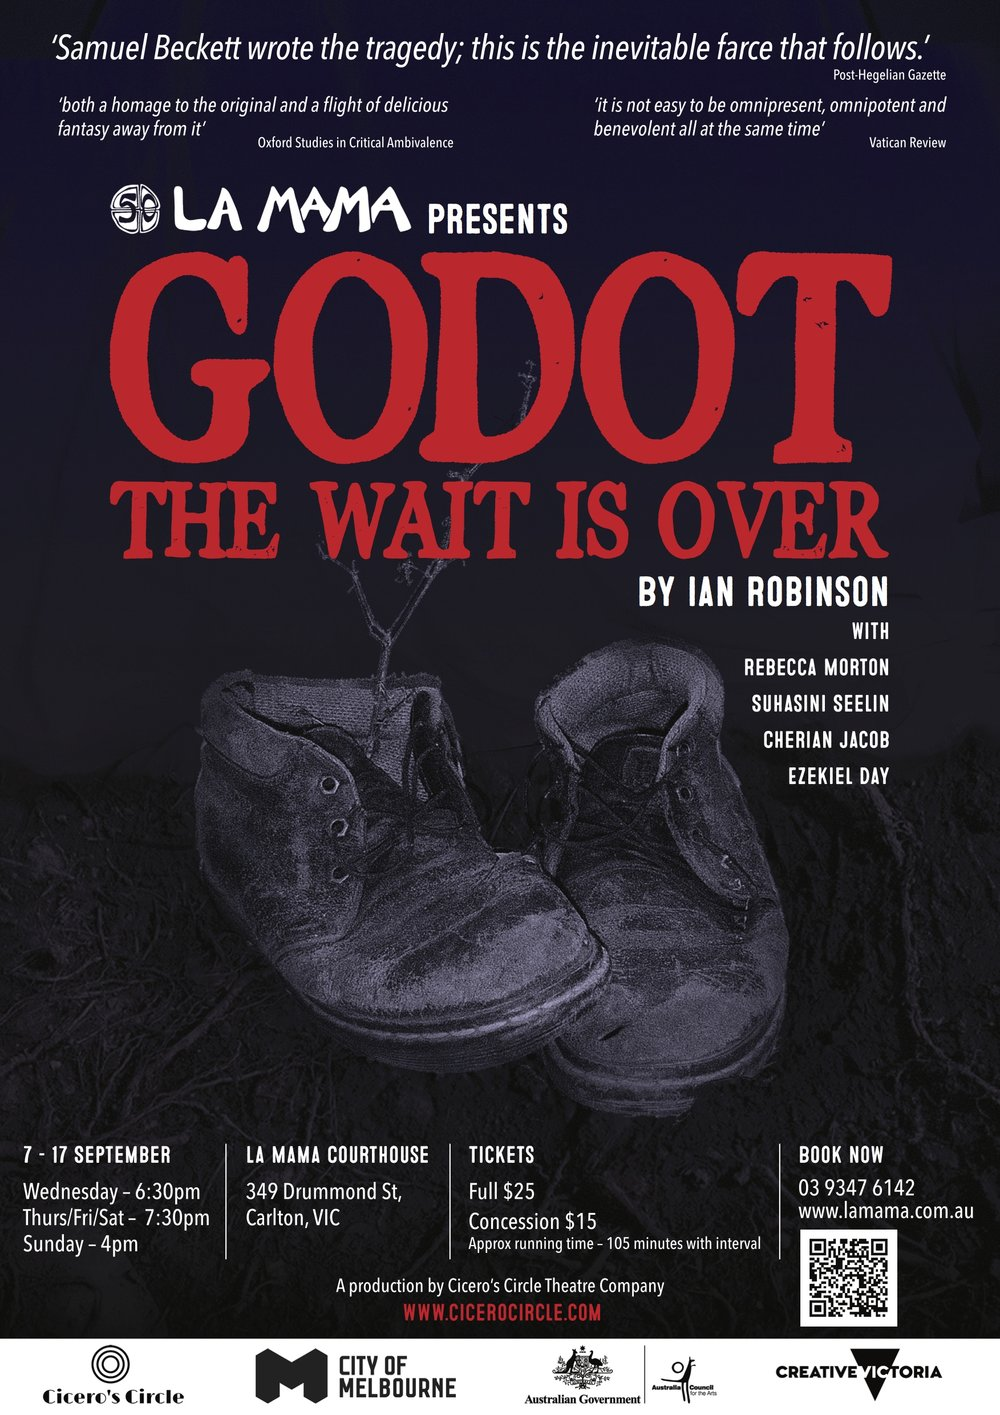 Godot: The wait is over, By Ian Robinson